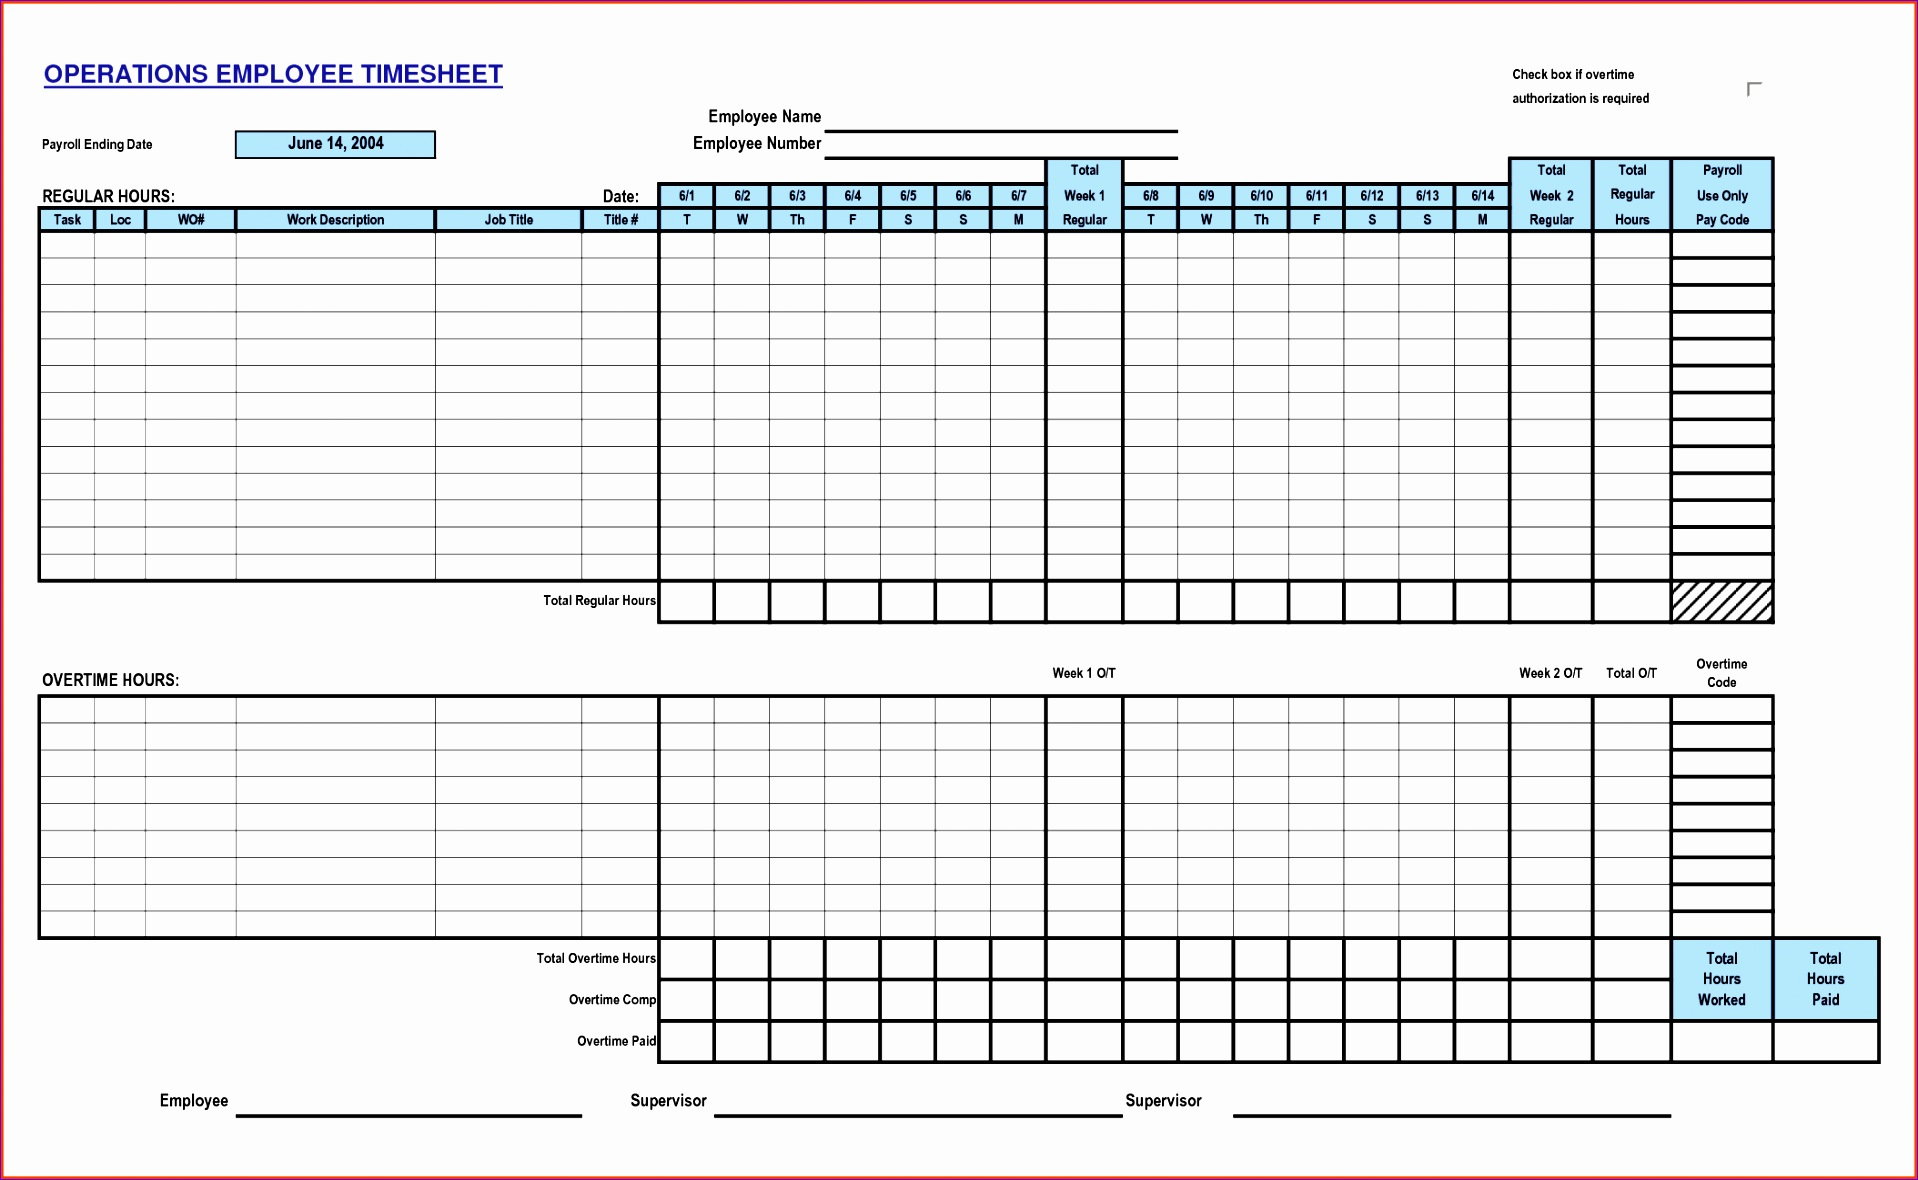 Excel Project Plan Timeline Template ExcelTemplates - Project plan and timeline template